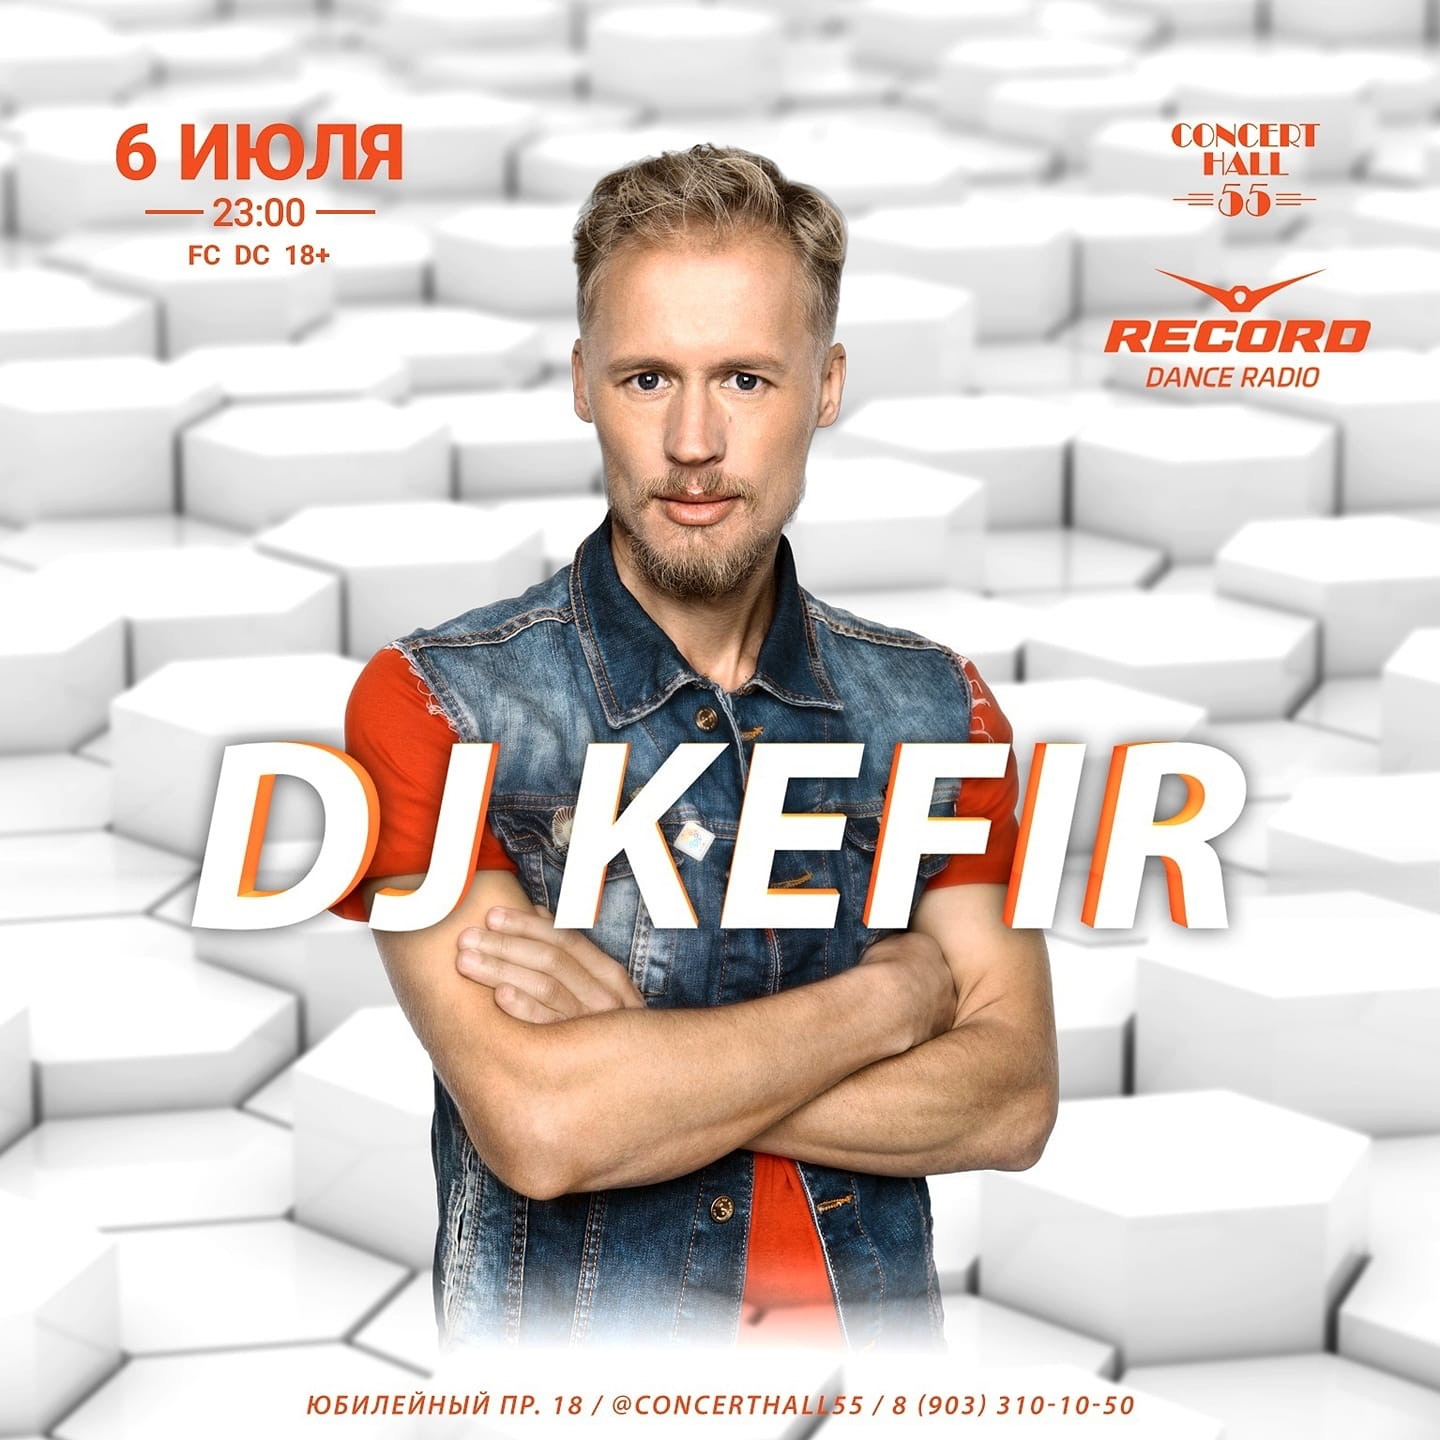 DJ KEFIR in Concert Hall 55